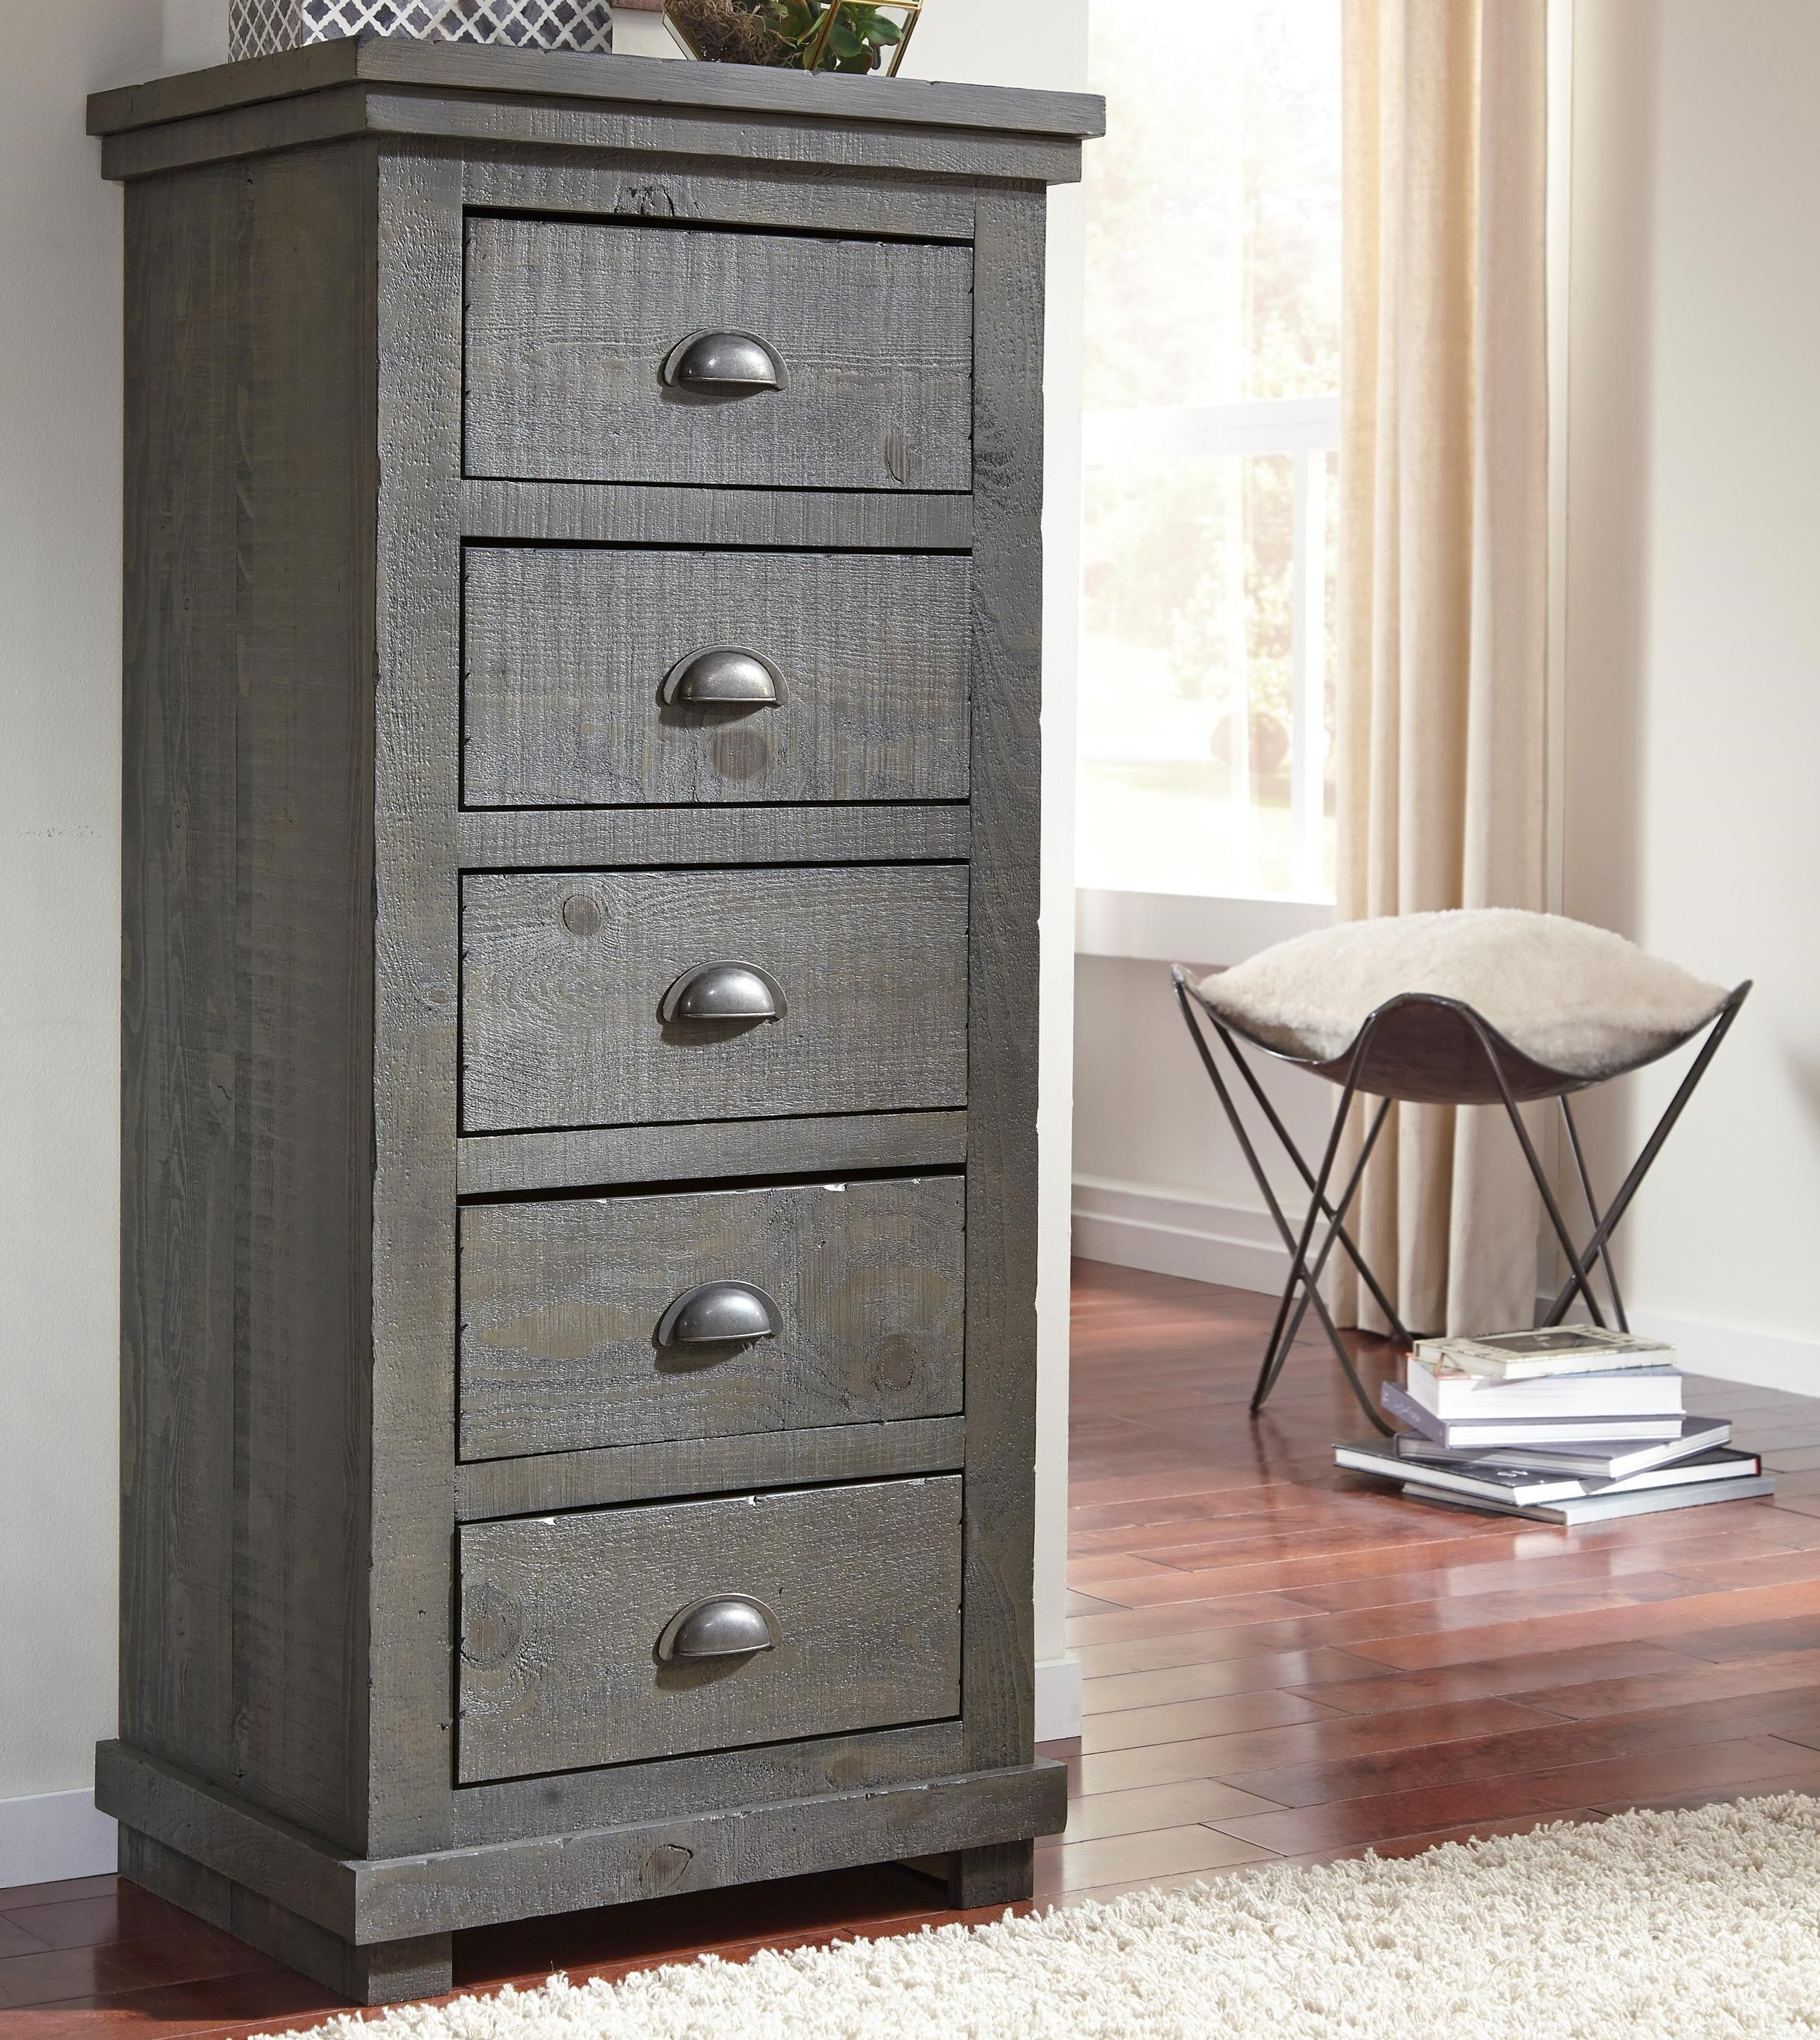 Progressive furniture willow distressed pine lingerie chest boulevard home furnishings - Cabinet bras nantes location ...